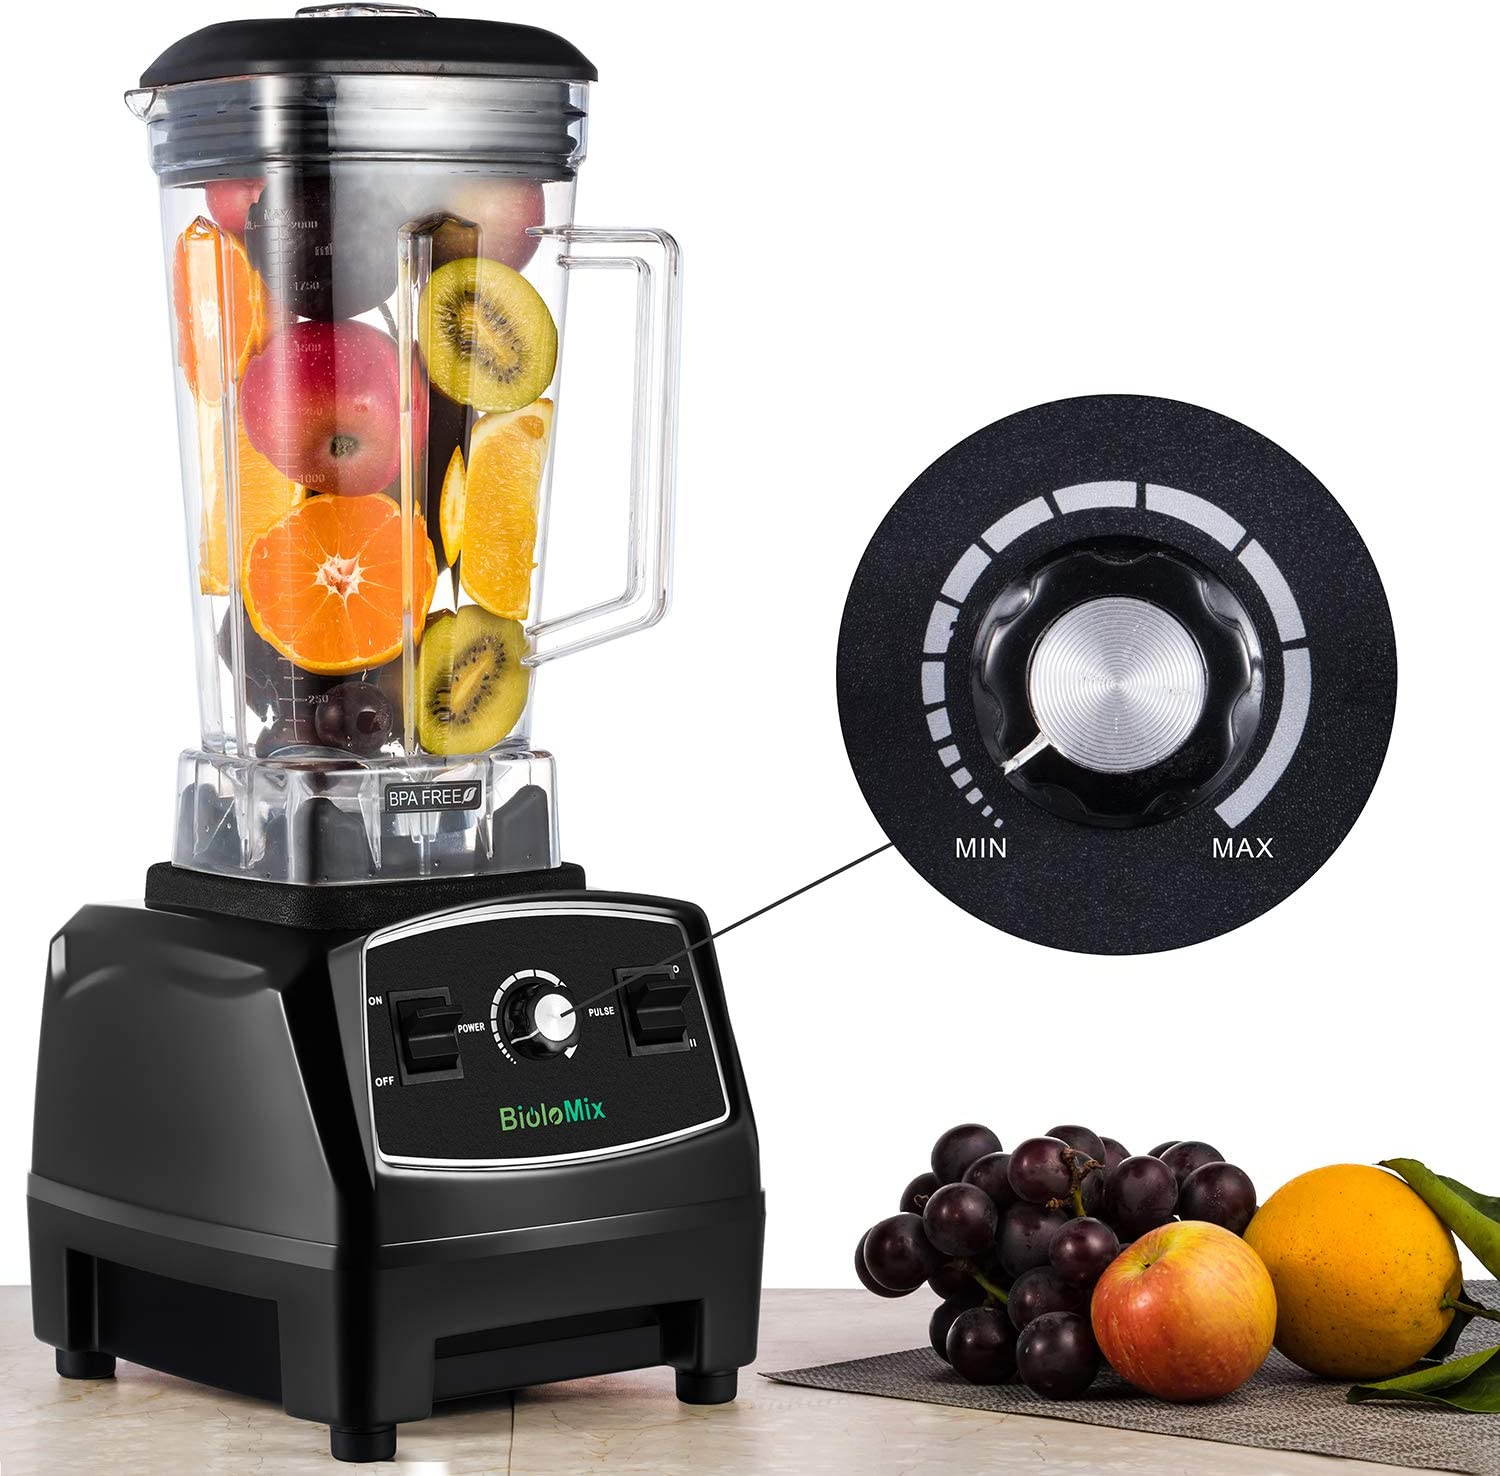 Best Blender Under $100 - Countertop Blender Professional Commercial Blender